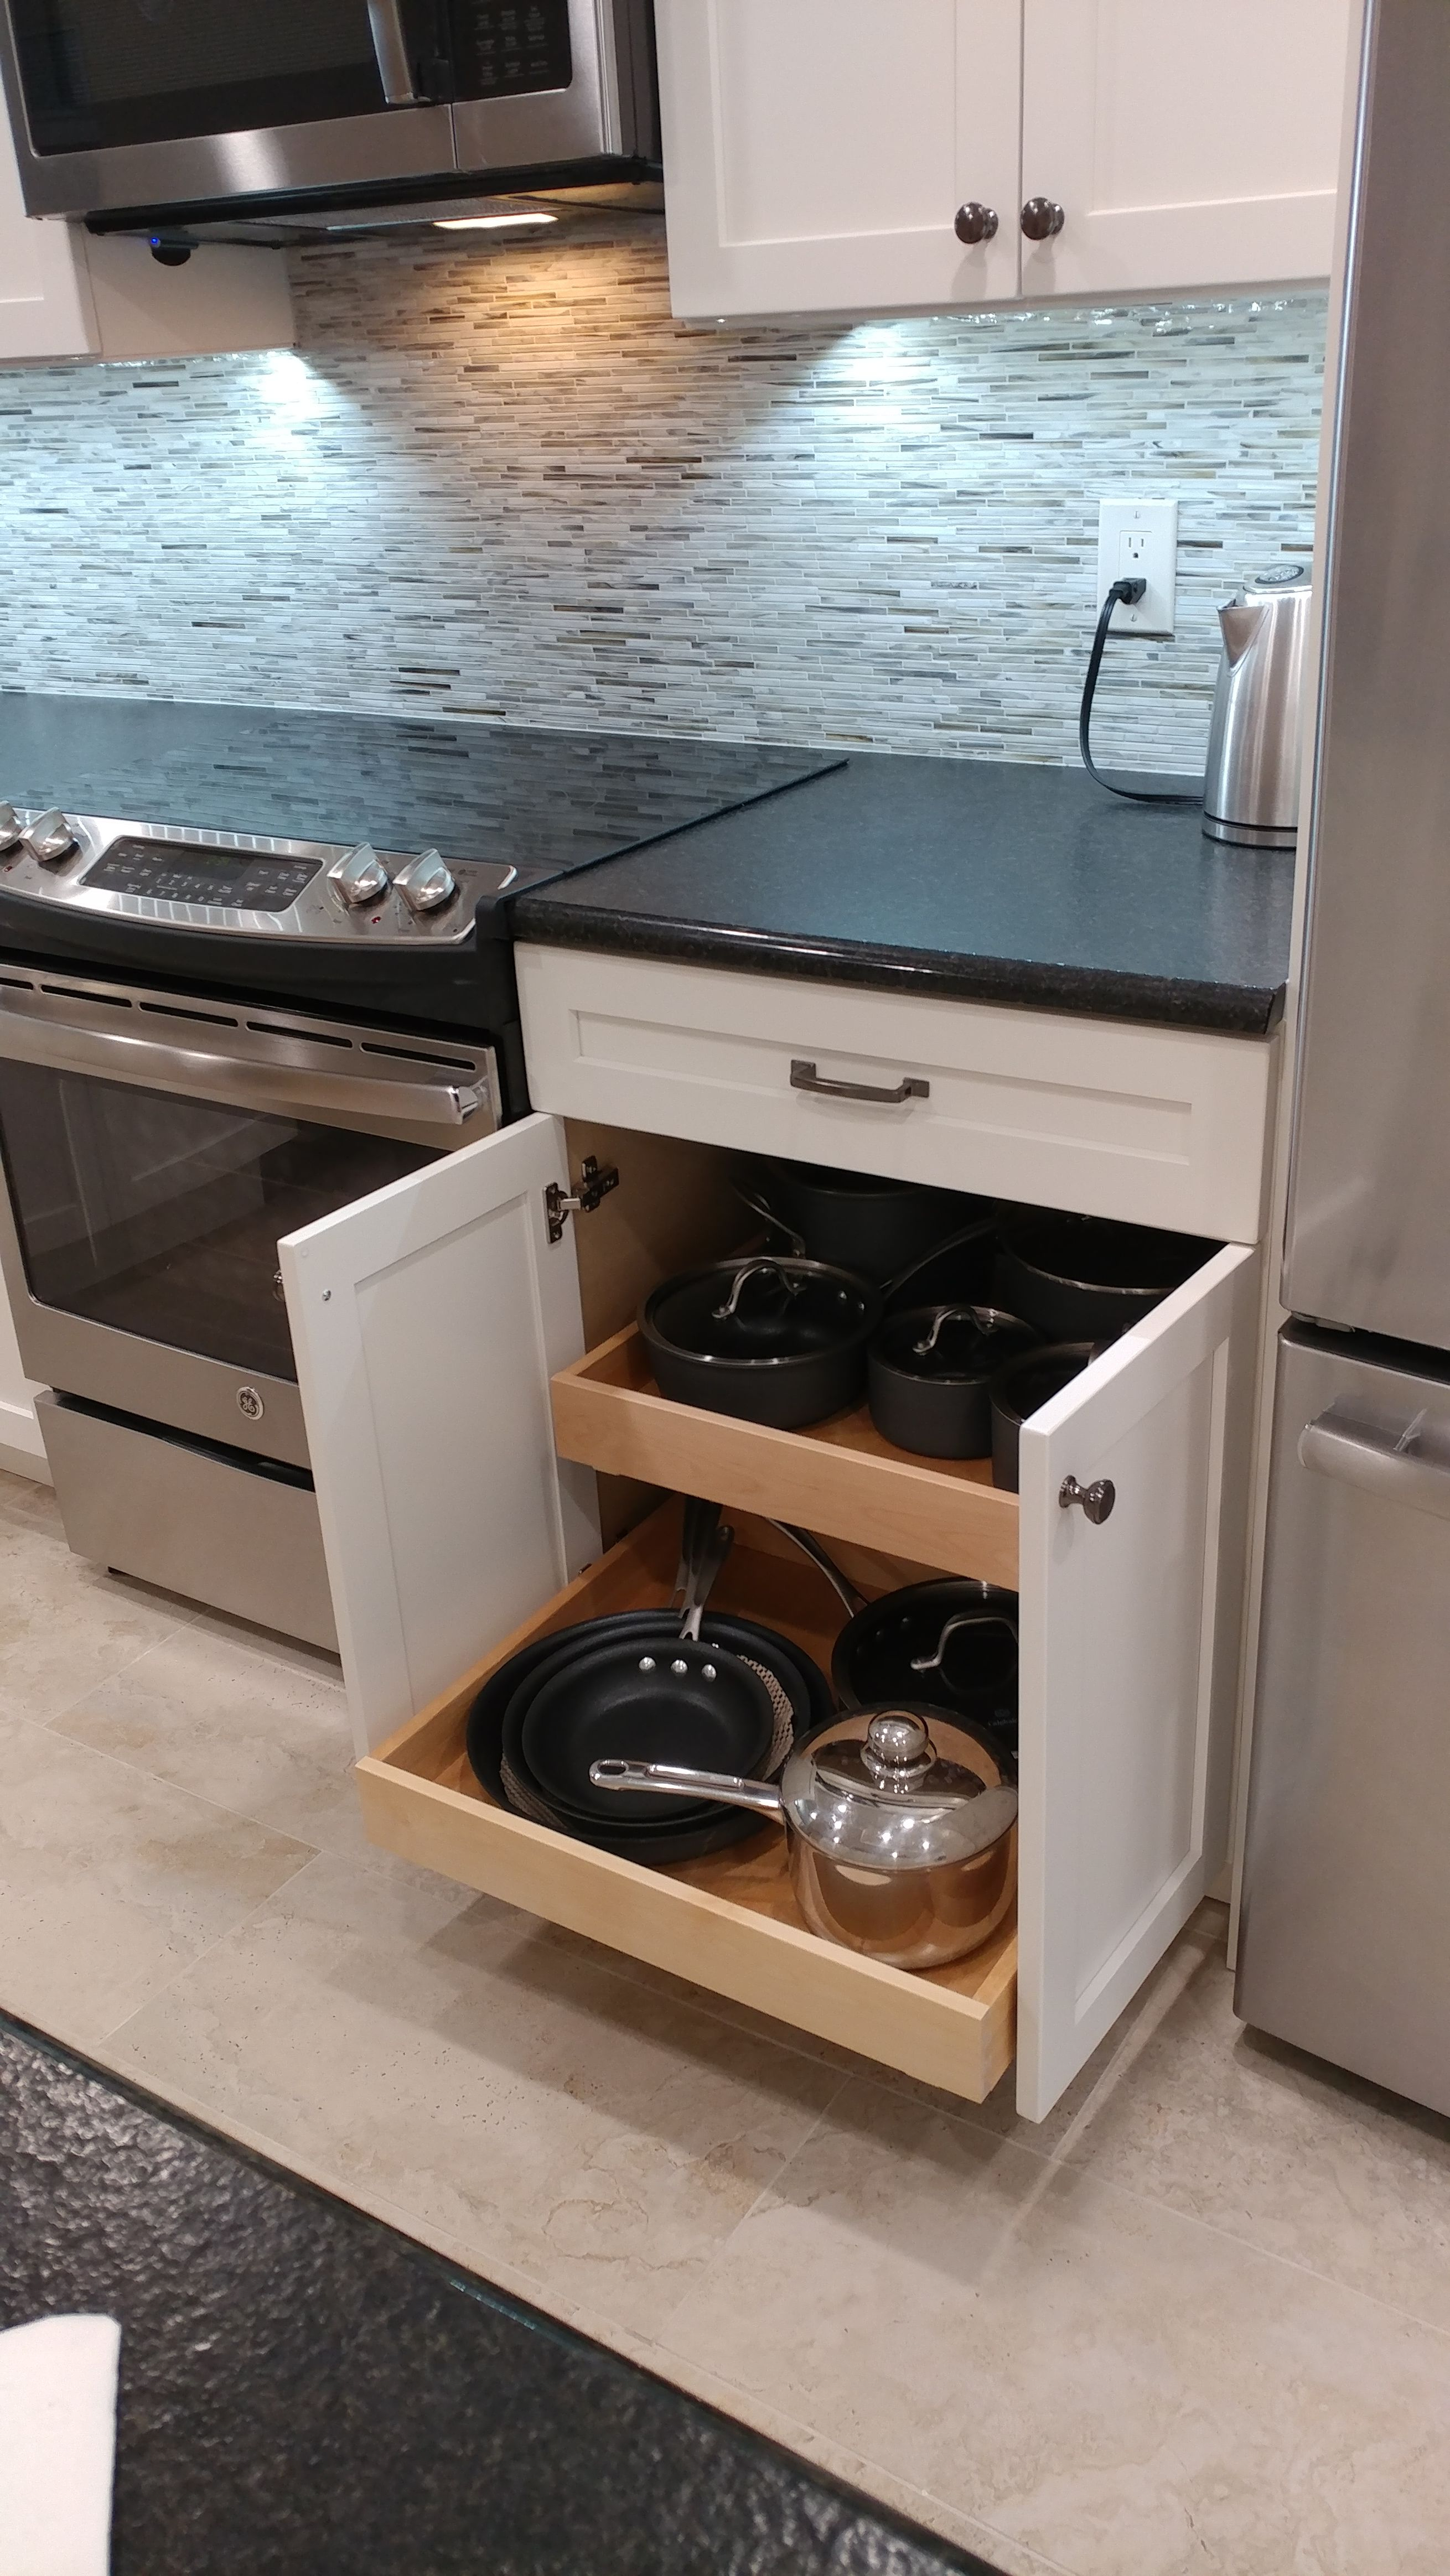 Alabaster Shaker Style Cabinets By Eudora With Black Leather Granite Tops The Shell Backsplash And Be Shaker Style Cabinets Leather Granite Beautiful Kitchens